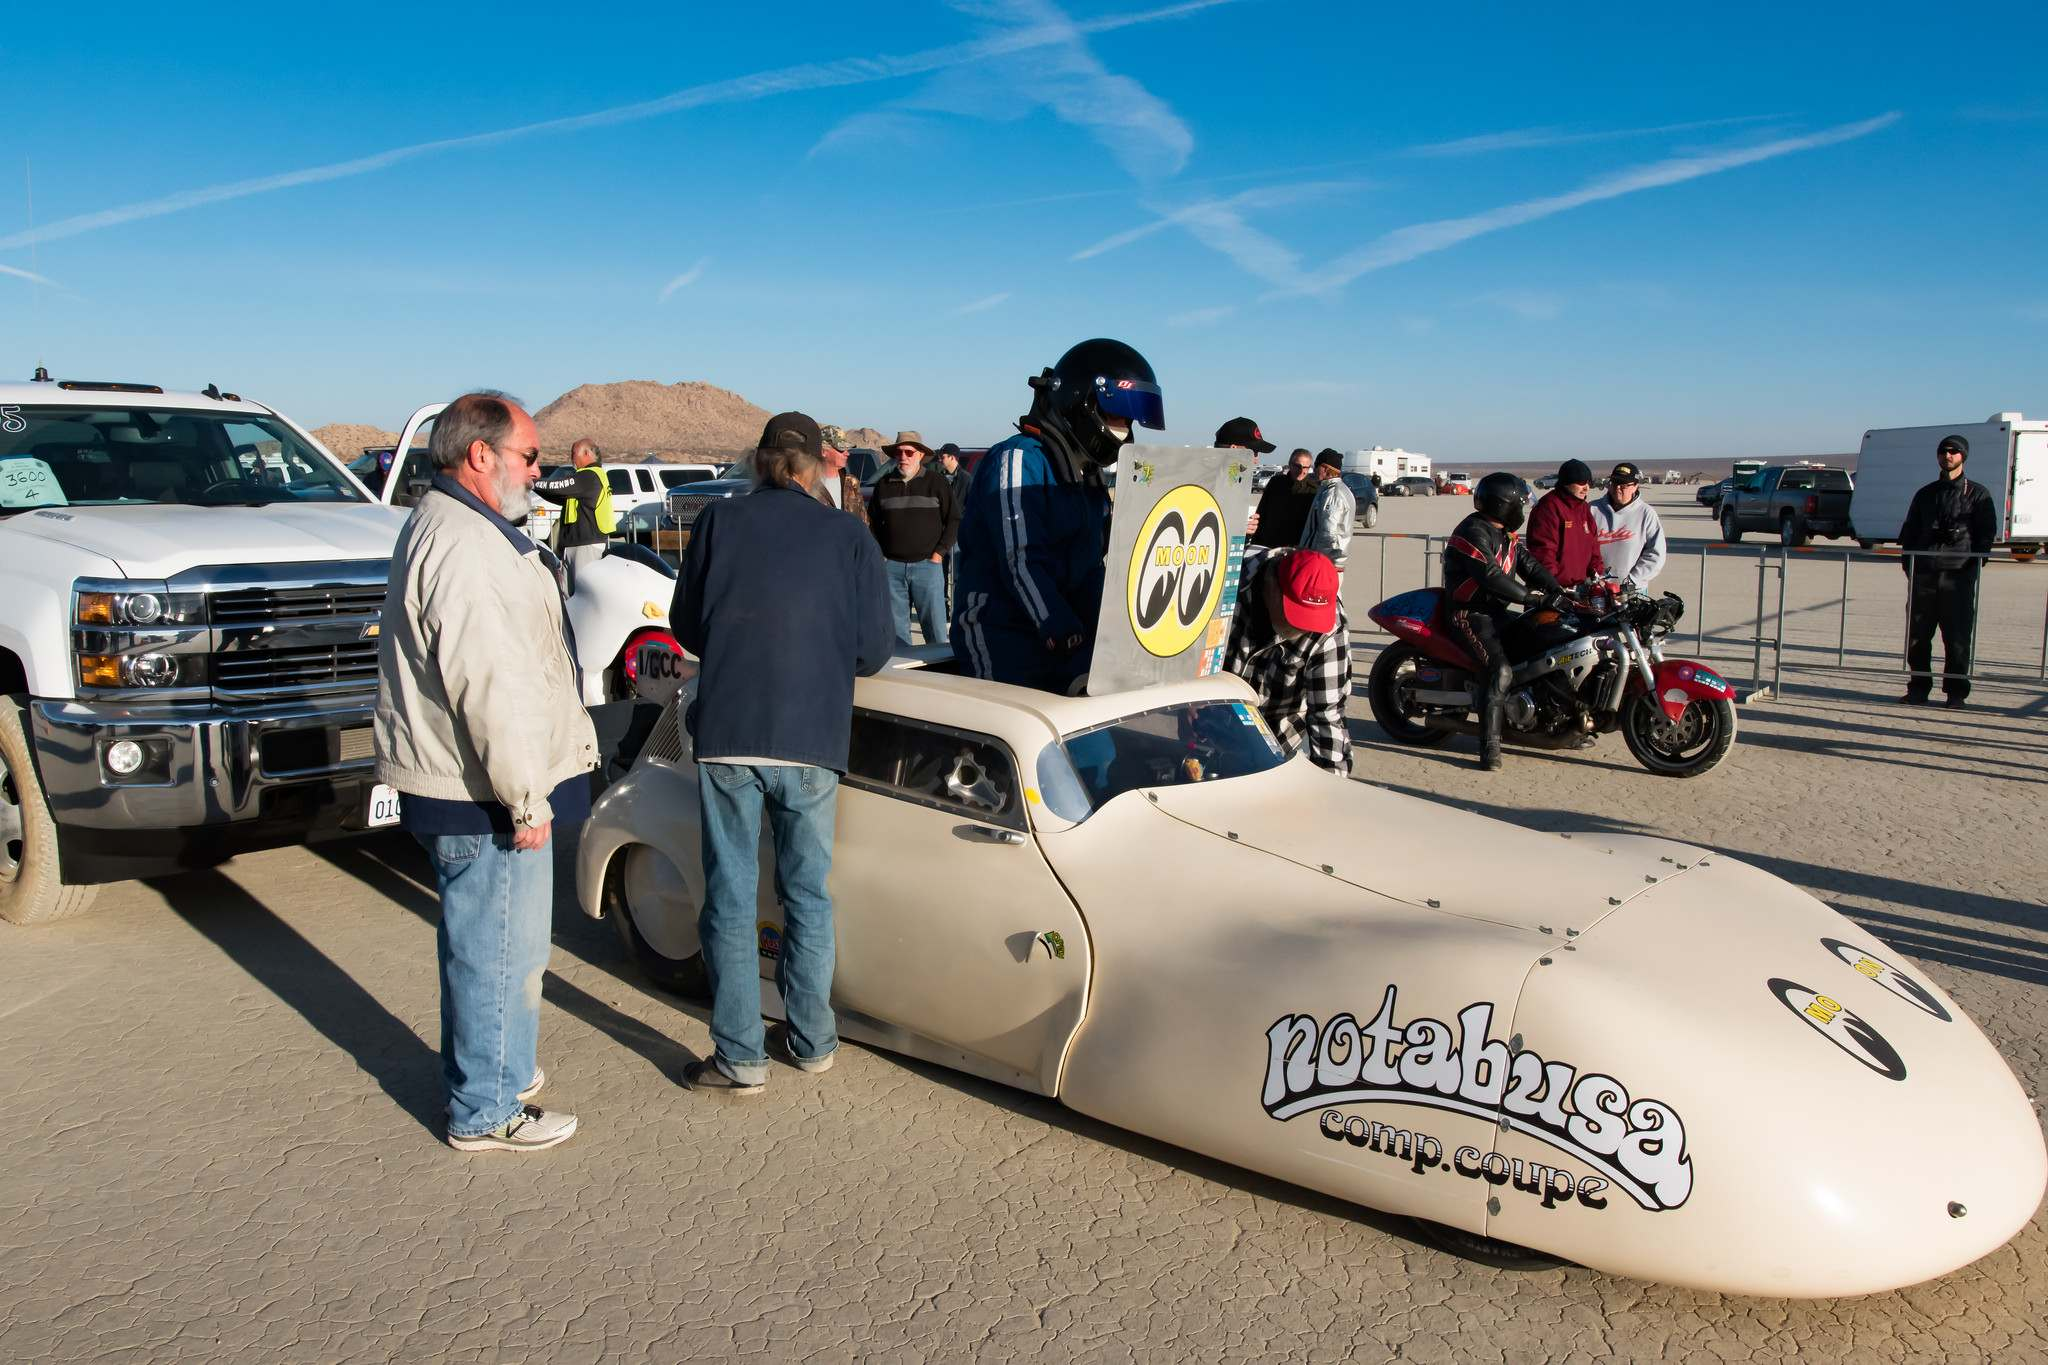 land speed racing7 Speed Racing at El Mirage Dry Lake